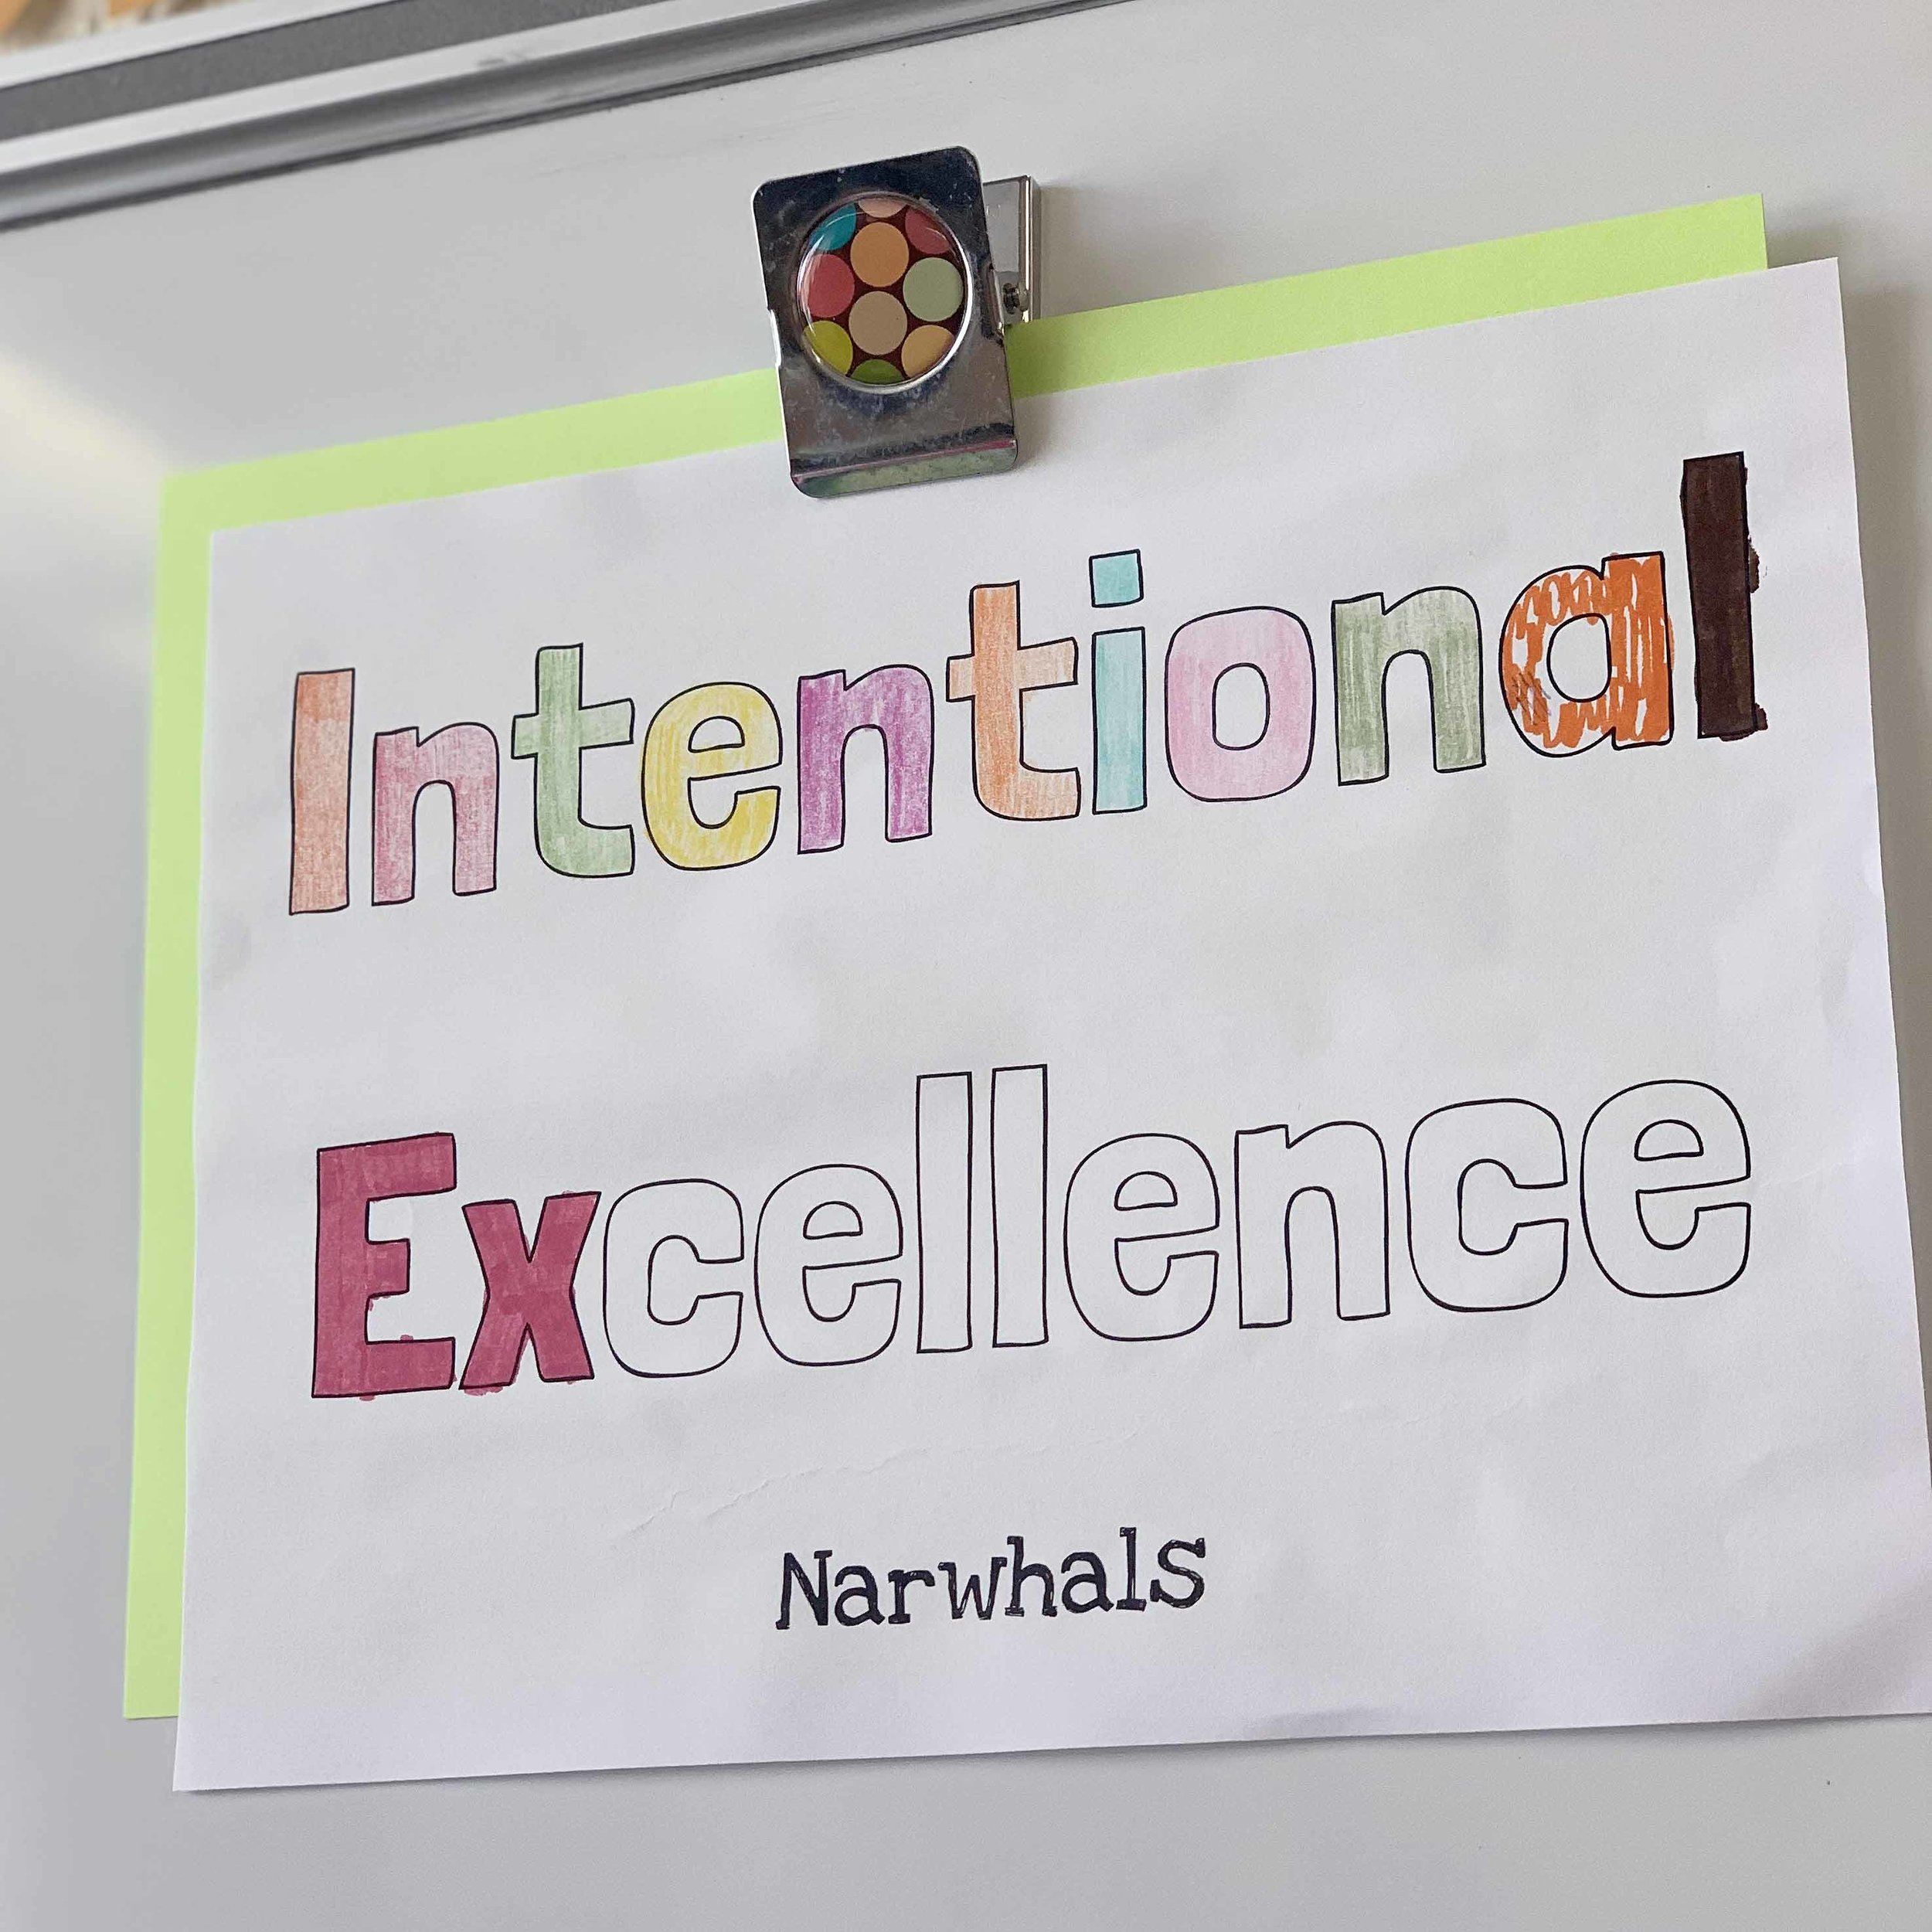 We talk about what Intentional Excellence means!